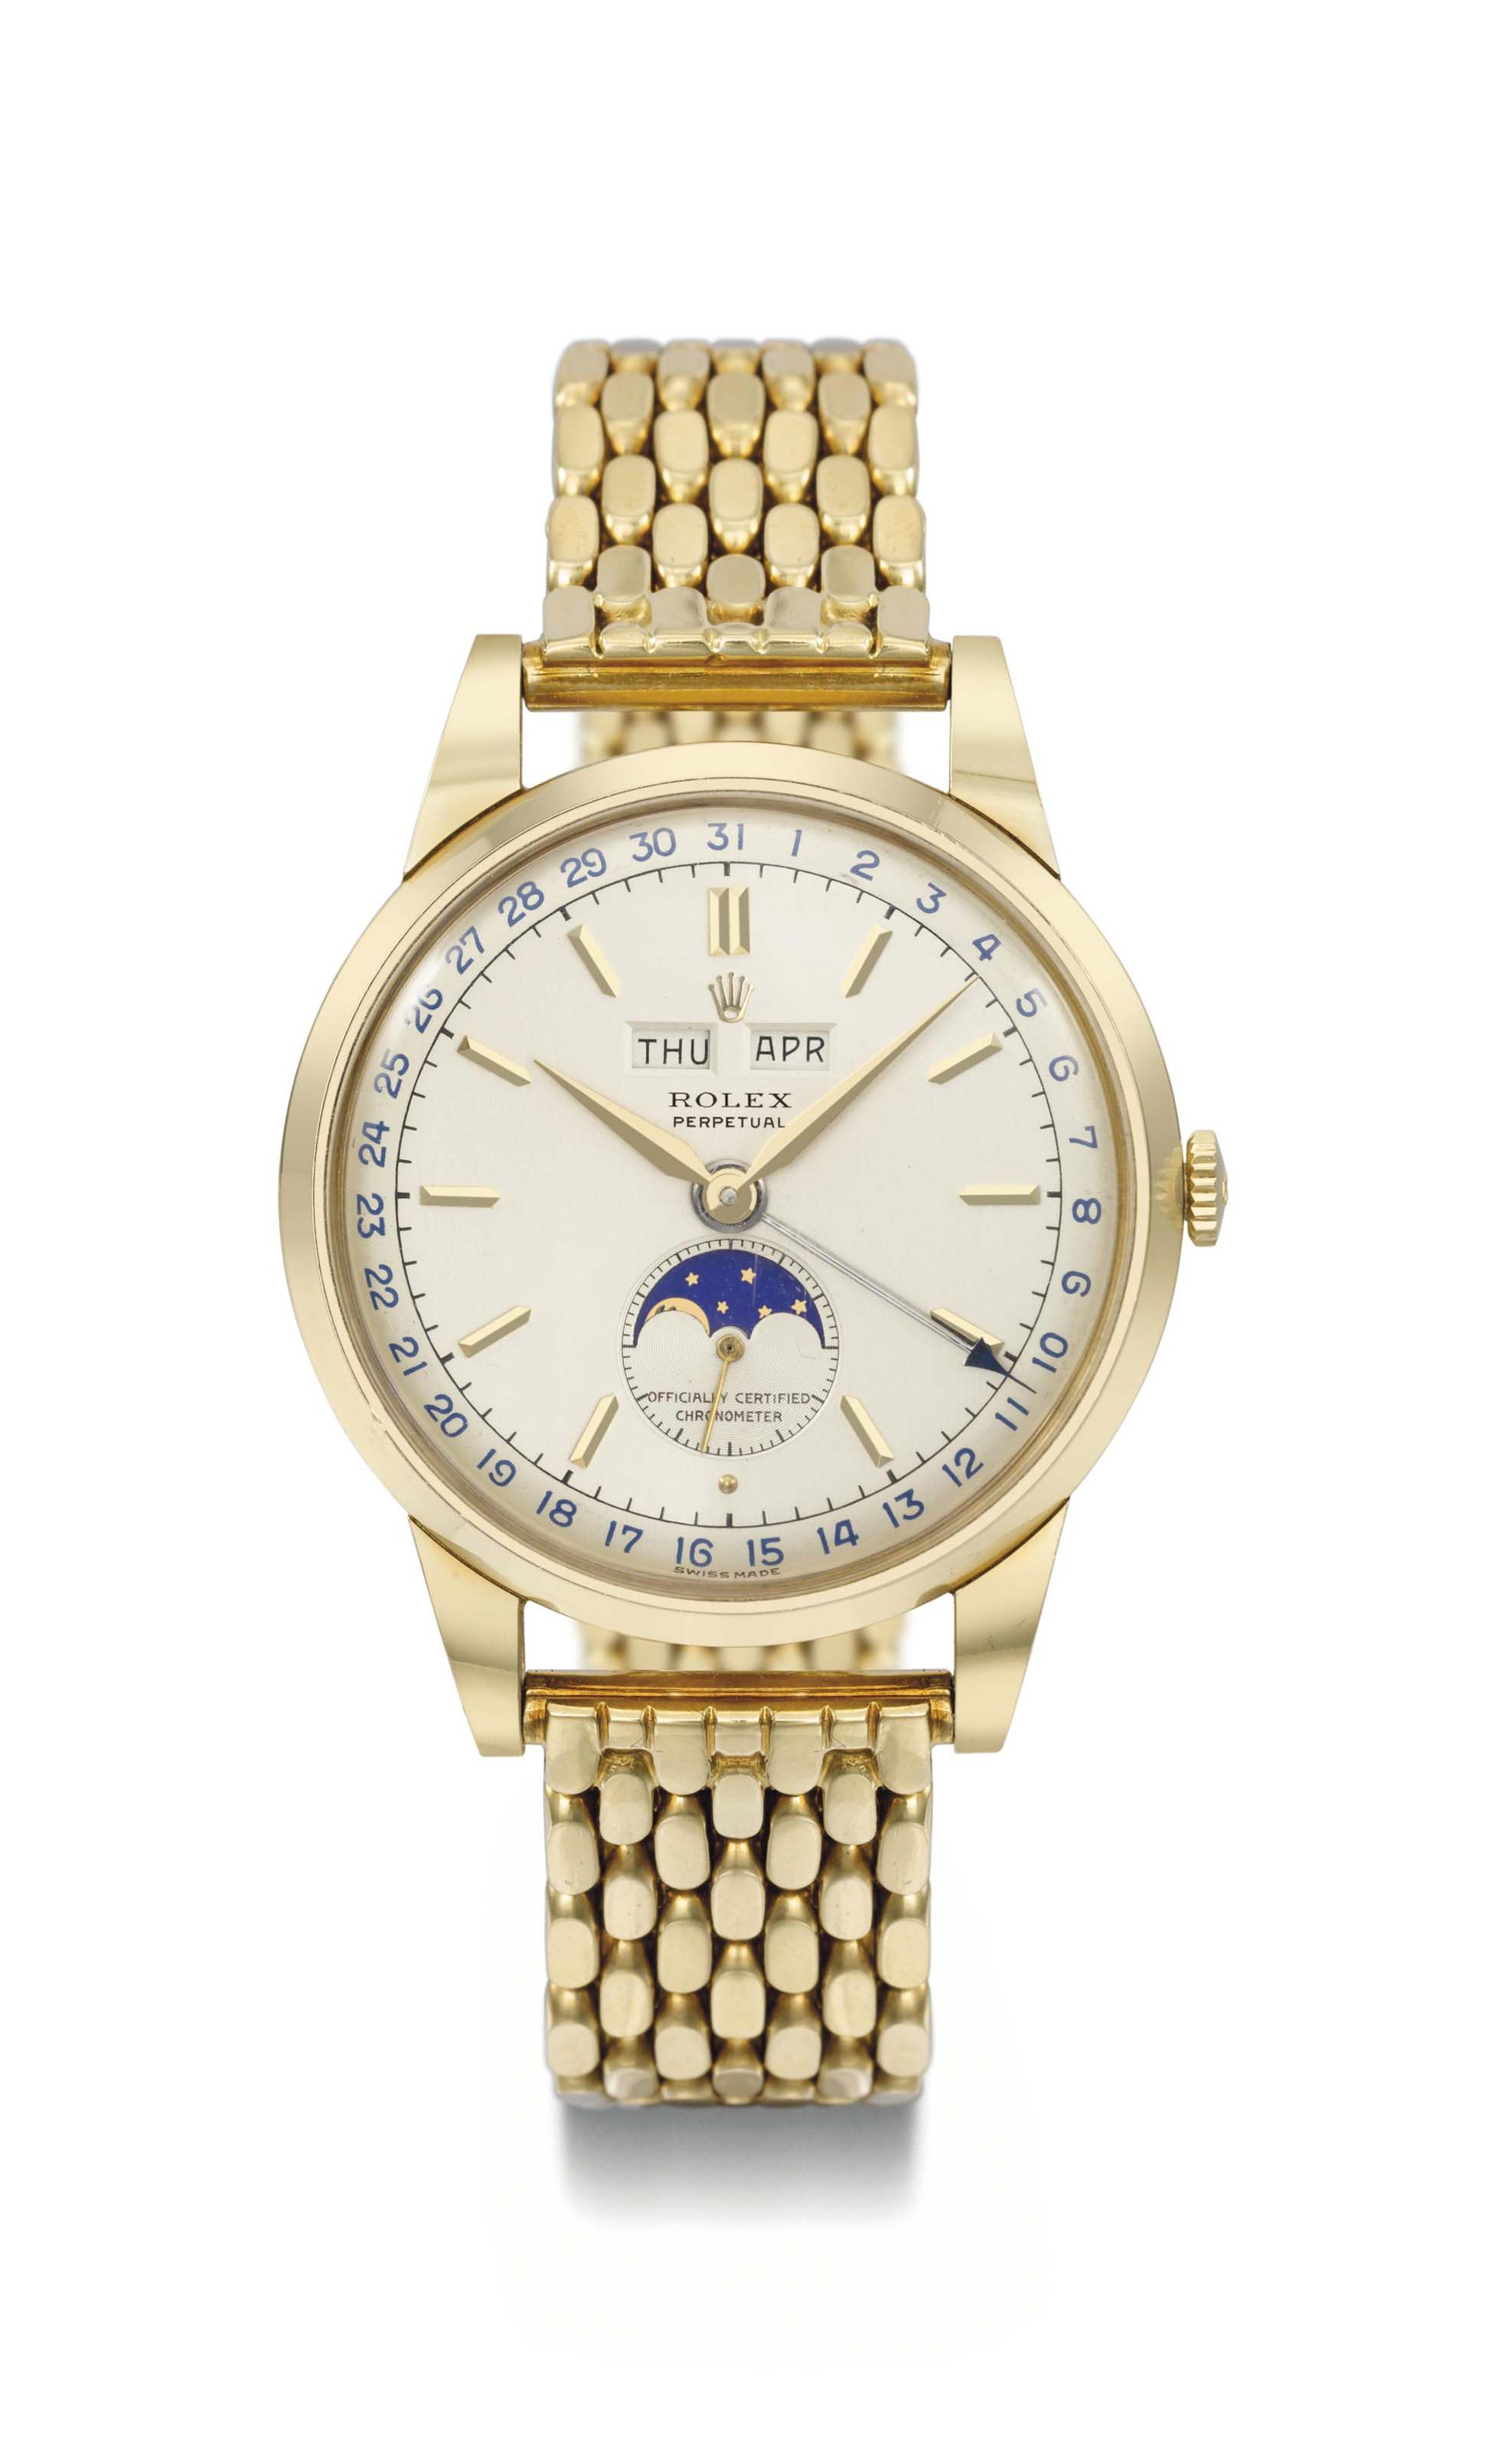 Rolex. An extremely fine and attractive 18K gold automatic triple calendar wristwatch with moonphase, two-tone silvered dial and bracelet